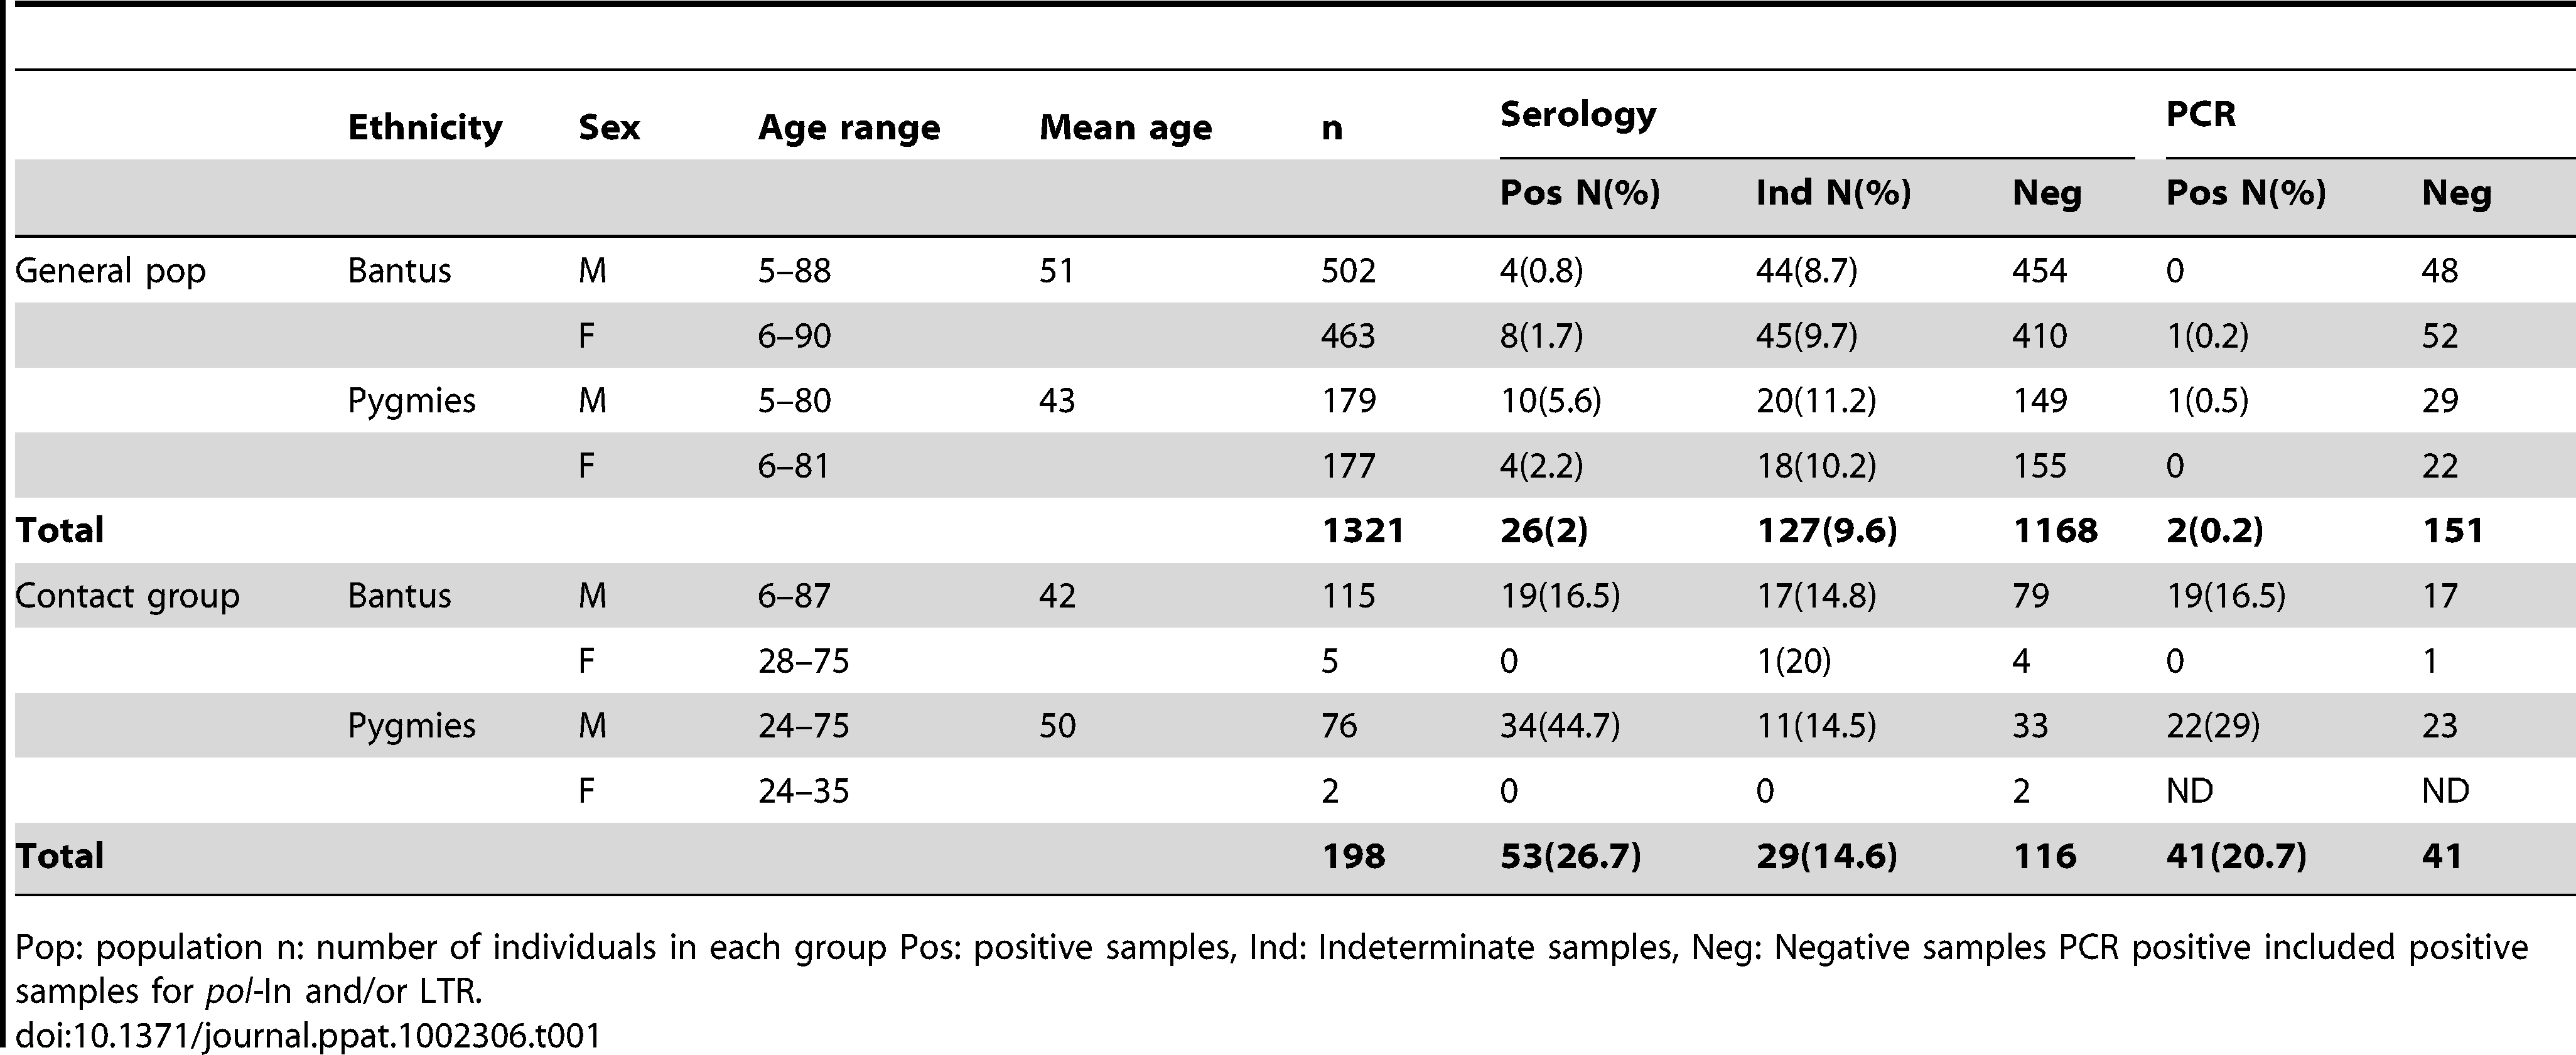 Global description of the general population group and the contact group, and overall serology and PCR results.